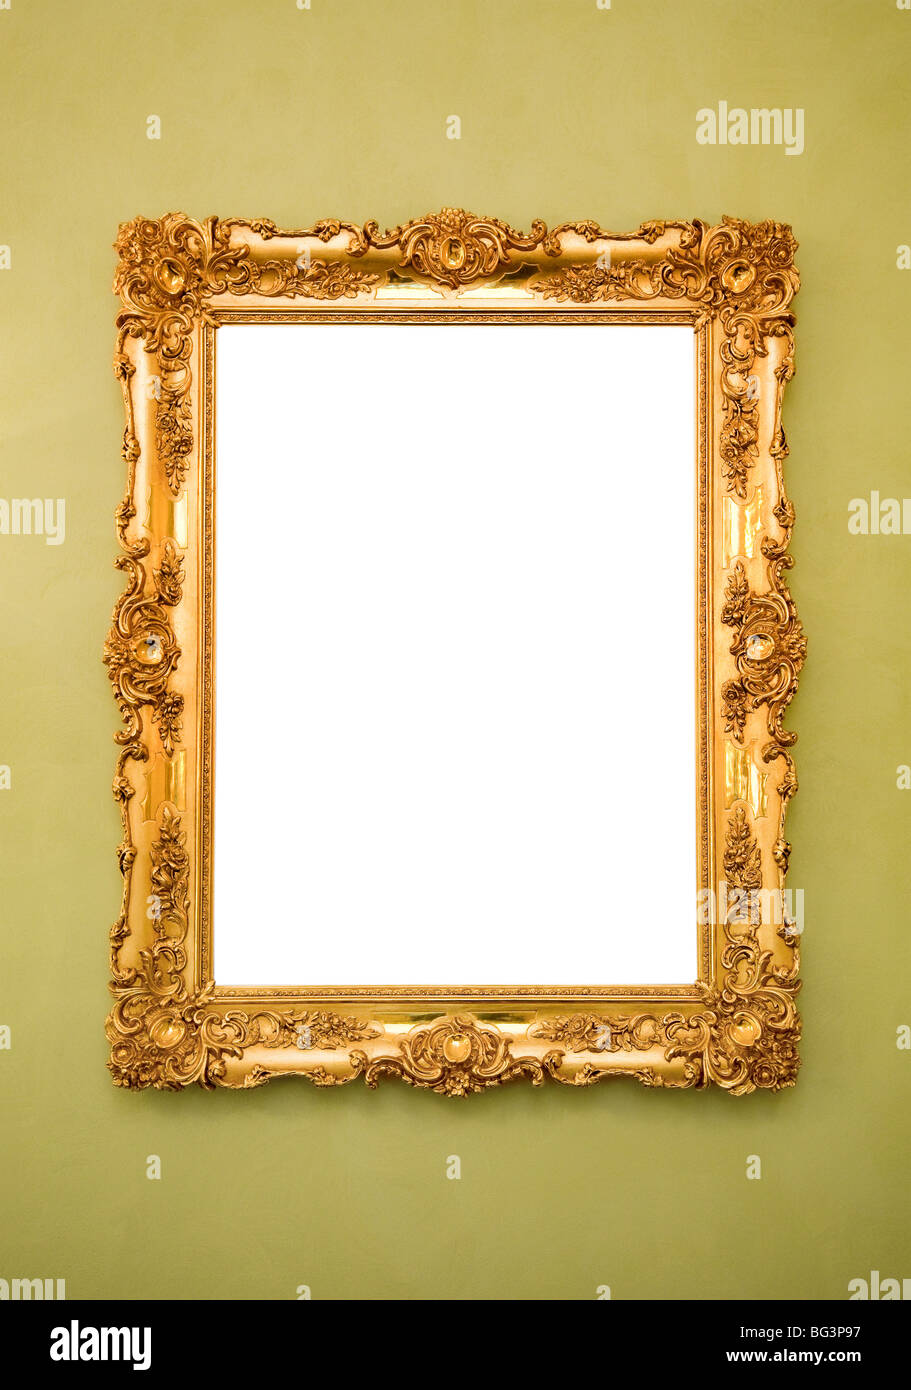 Ornate Picture Frame Wall Stock Photos & Ornate Picture Frame Wall ...